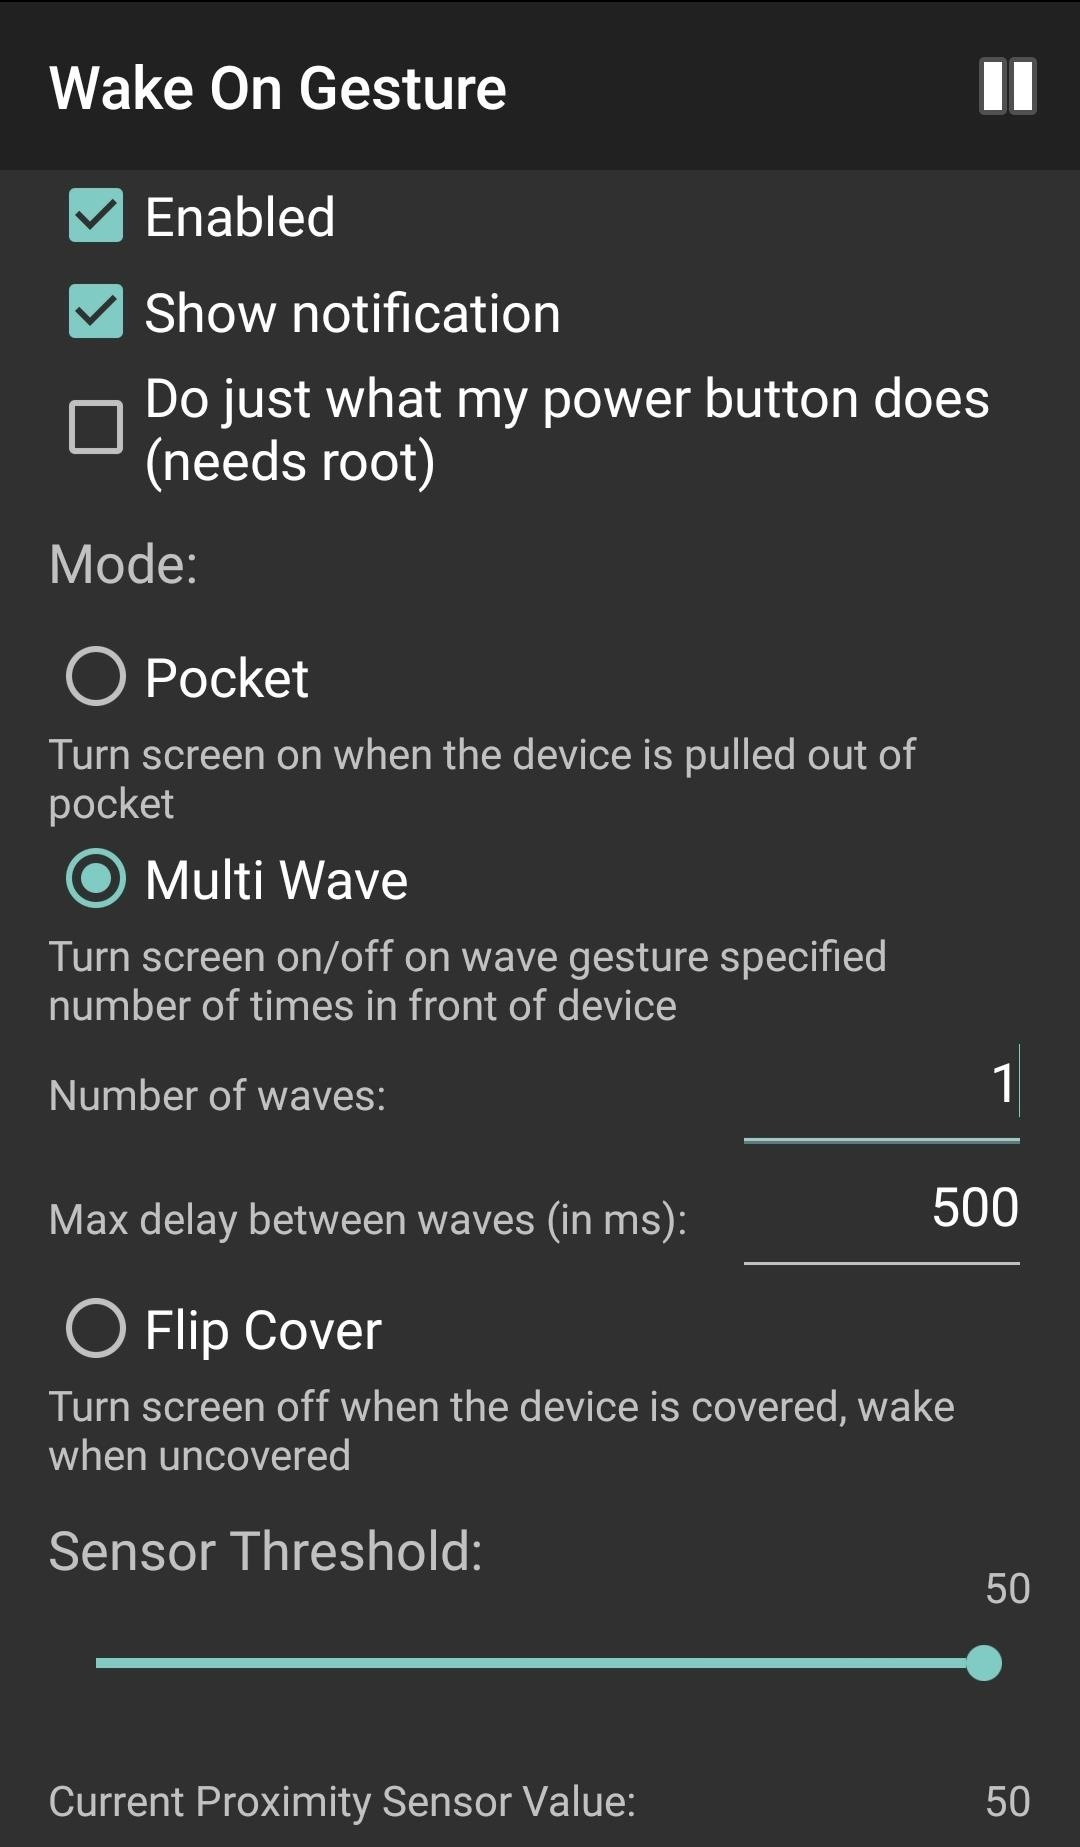 How to Turn Your Phone's Screen On Just by Waving